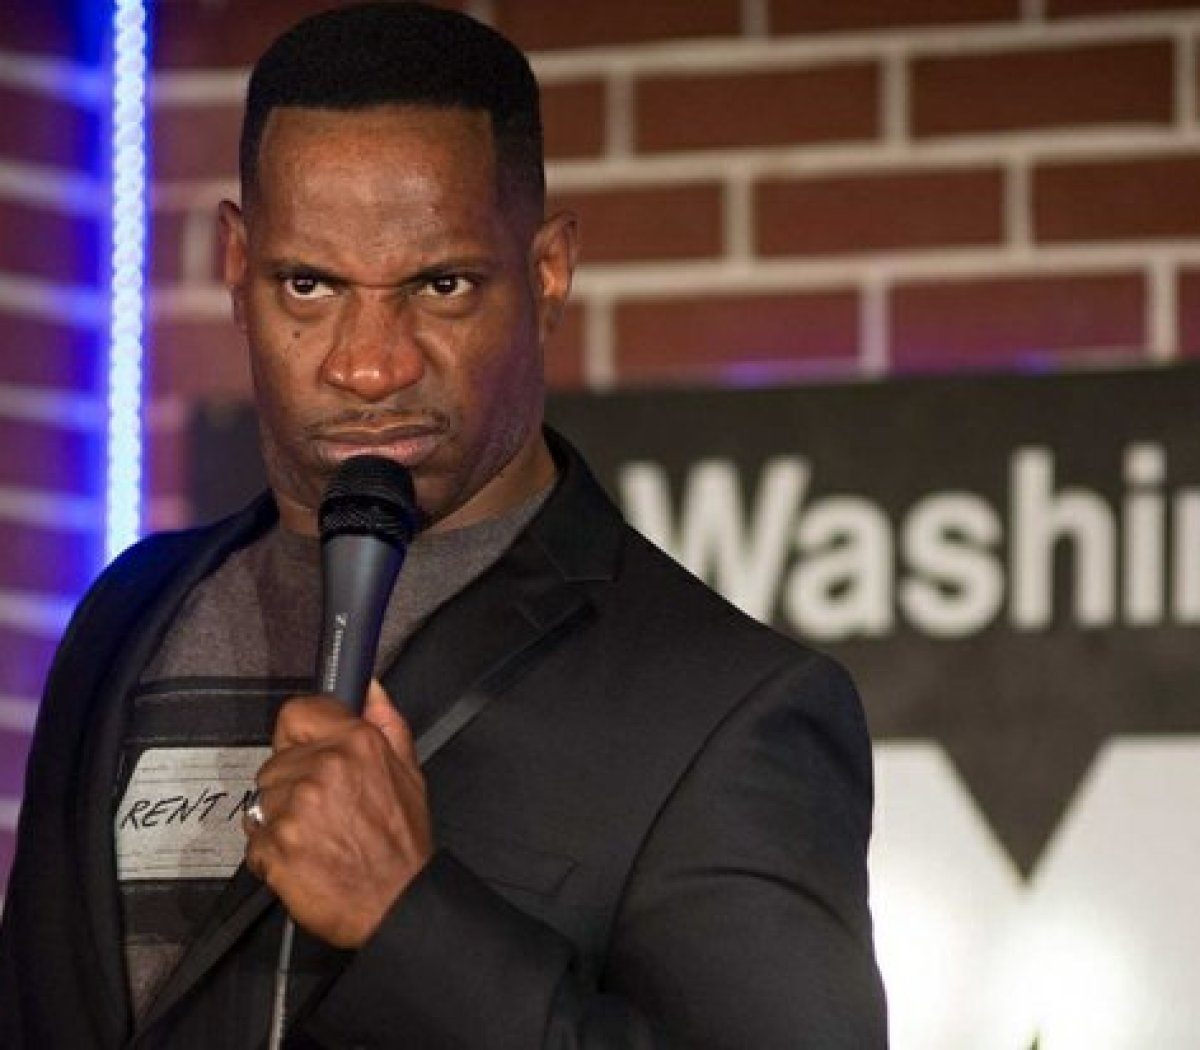 NBC's Last Comic Standing Season 8 winner, Rod Man, performs his stand-up routine about marriage and romance at the DC Improv, Friday, April 15, 2016 in northwest. /Photo by Patricia Little @5feet2